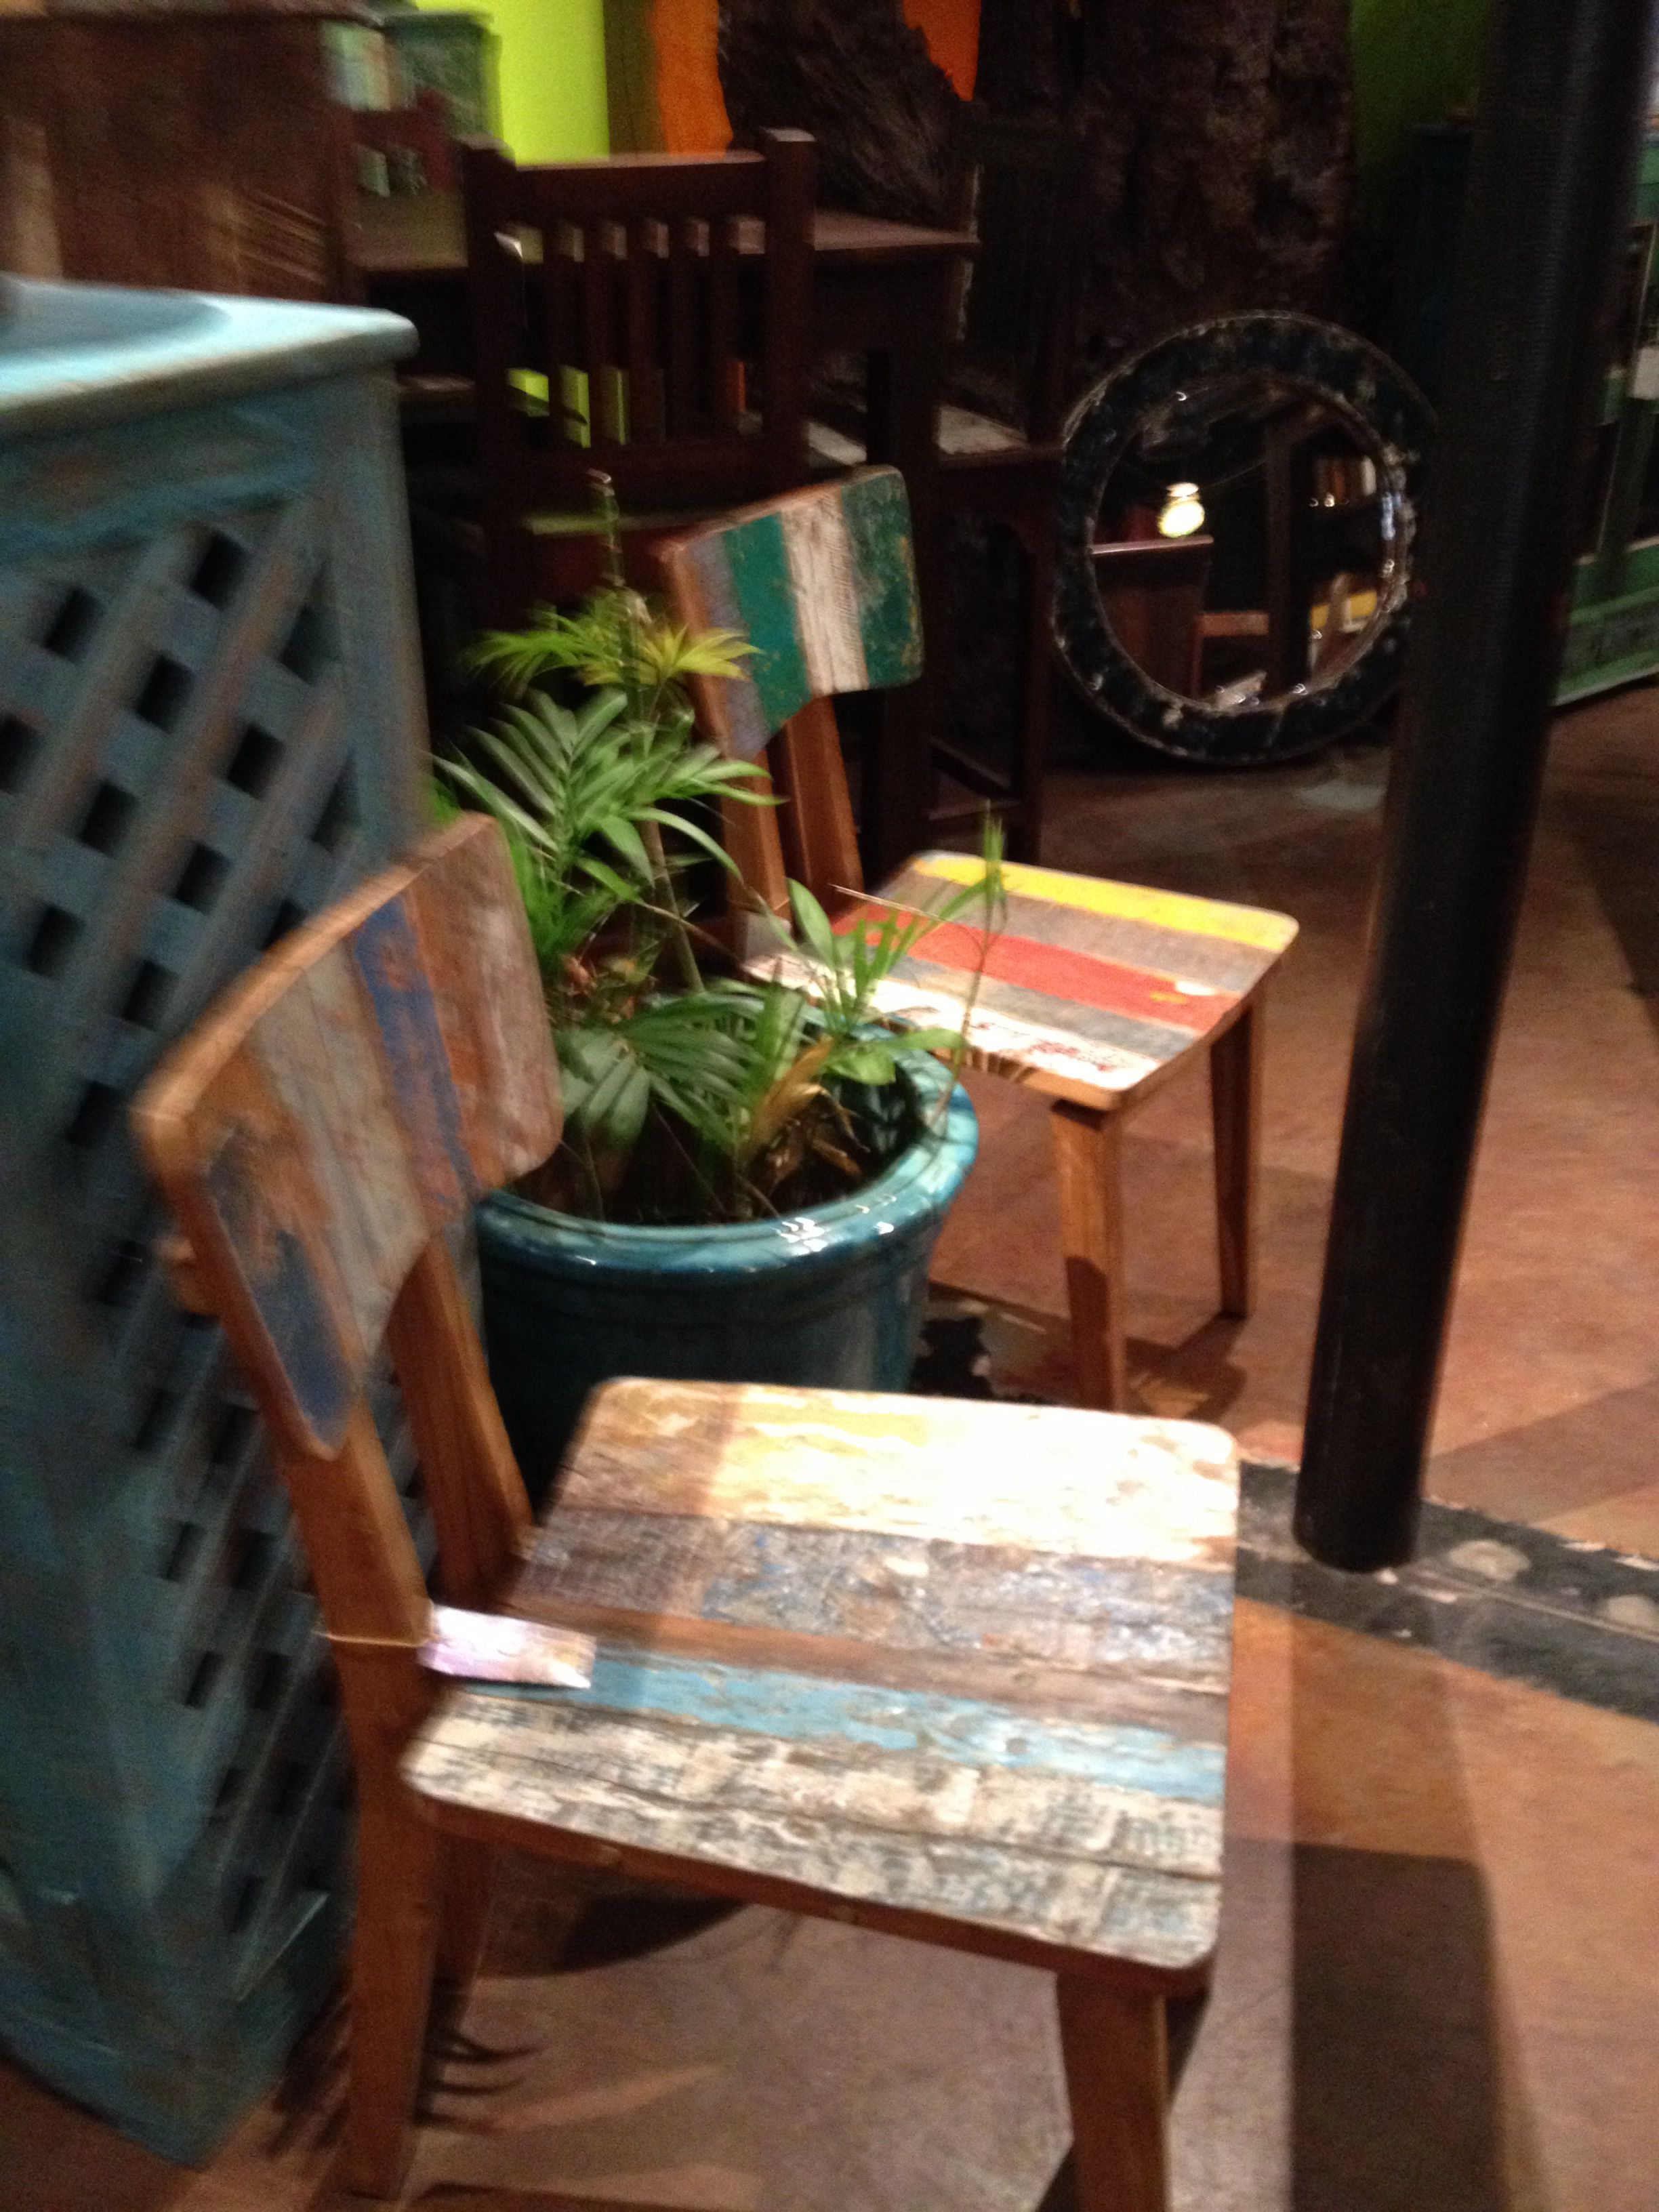 Washburn Imports Orlando Florida Has The Best Furniture! Recycled Old Boat  Wood Chairs!